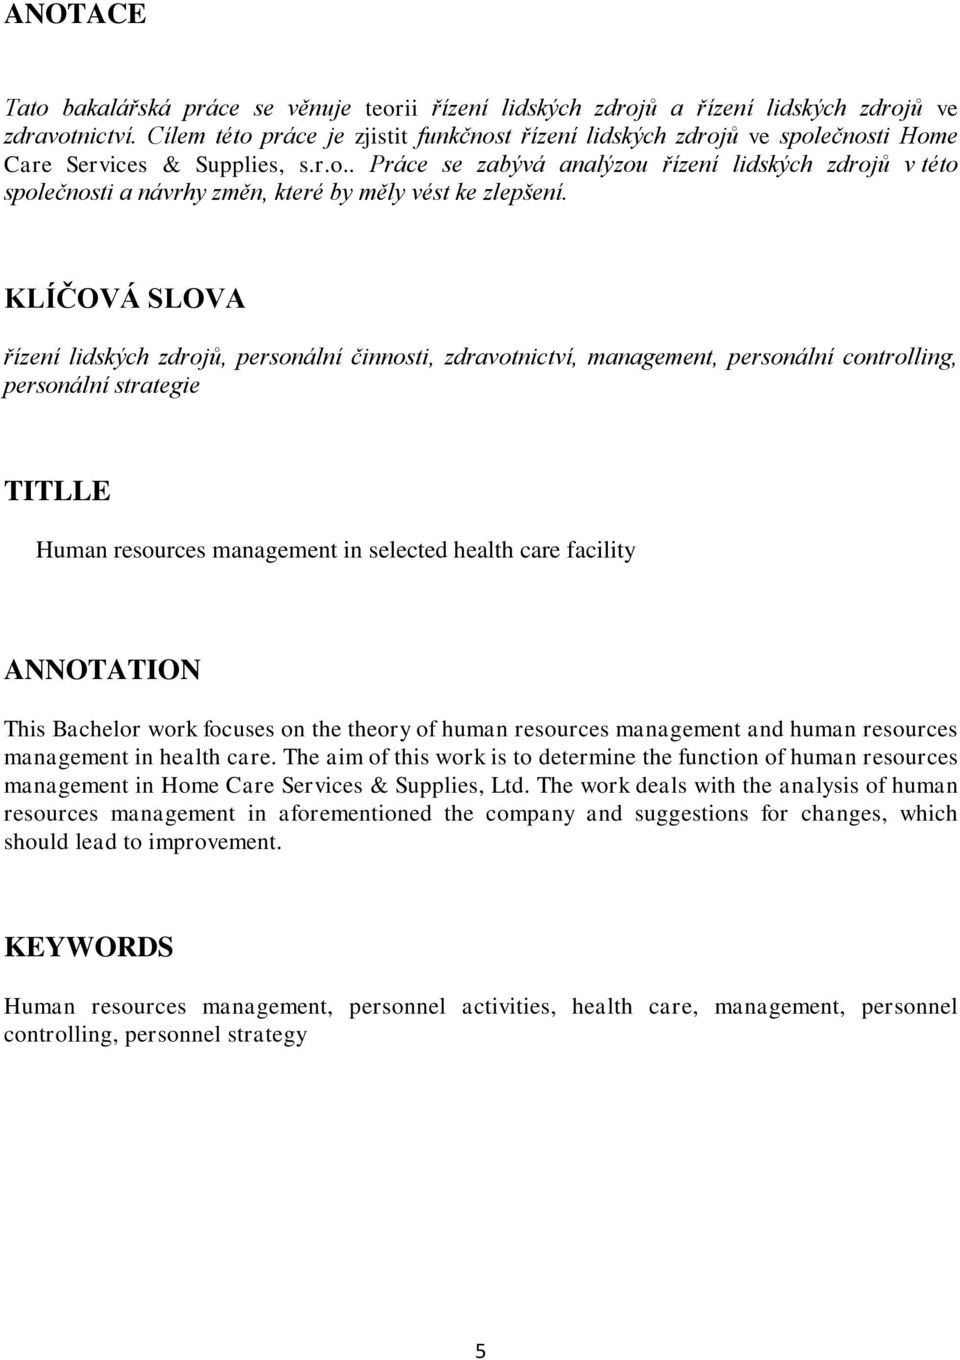 KLÍČOVÁ SLOVA řízení lidských zdrojů, personální činnosti, zdravotnictví, management, personální controlling, personální strategie TITLLE Human resources management in selected health care facility